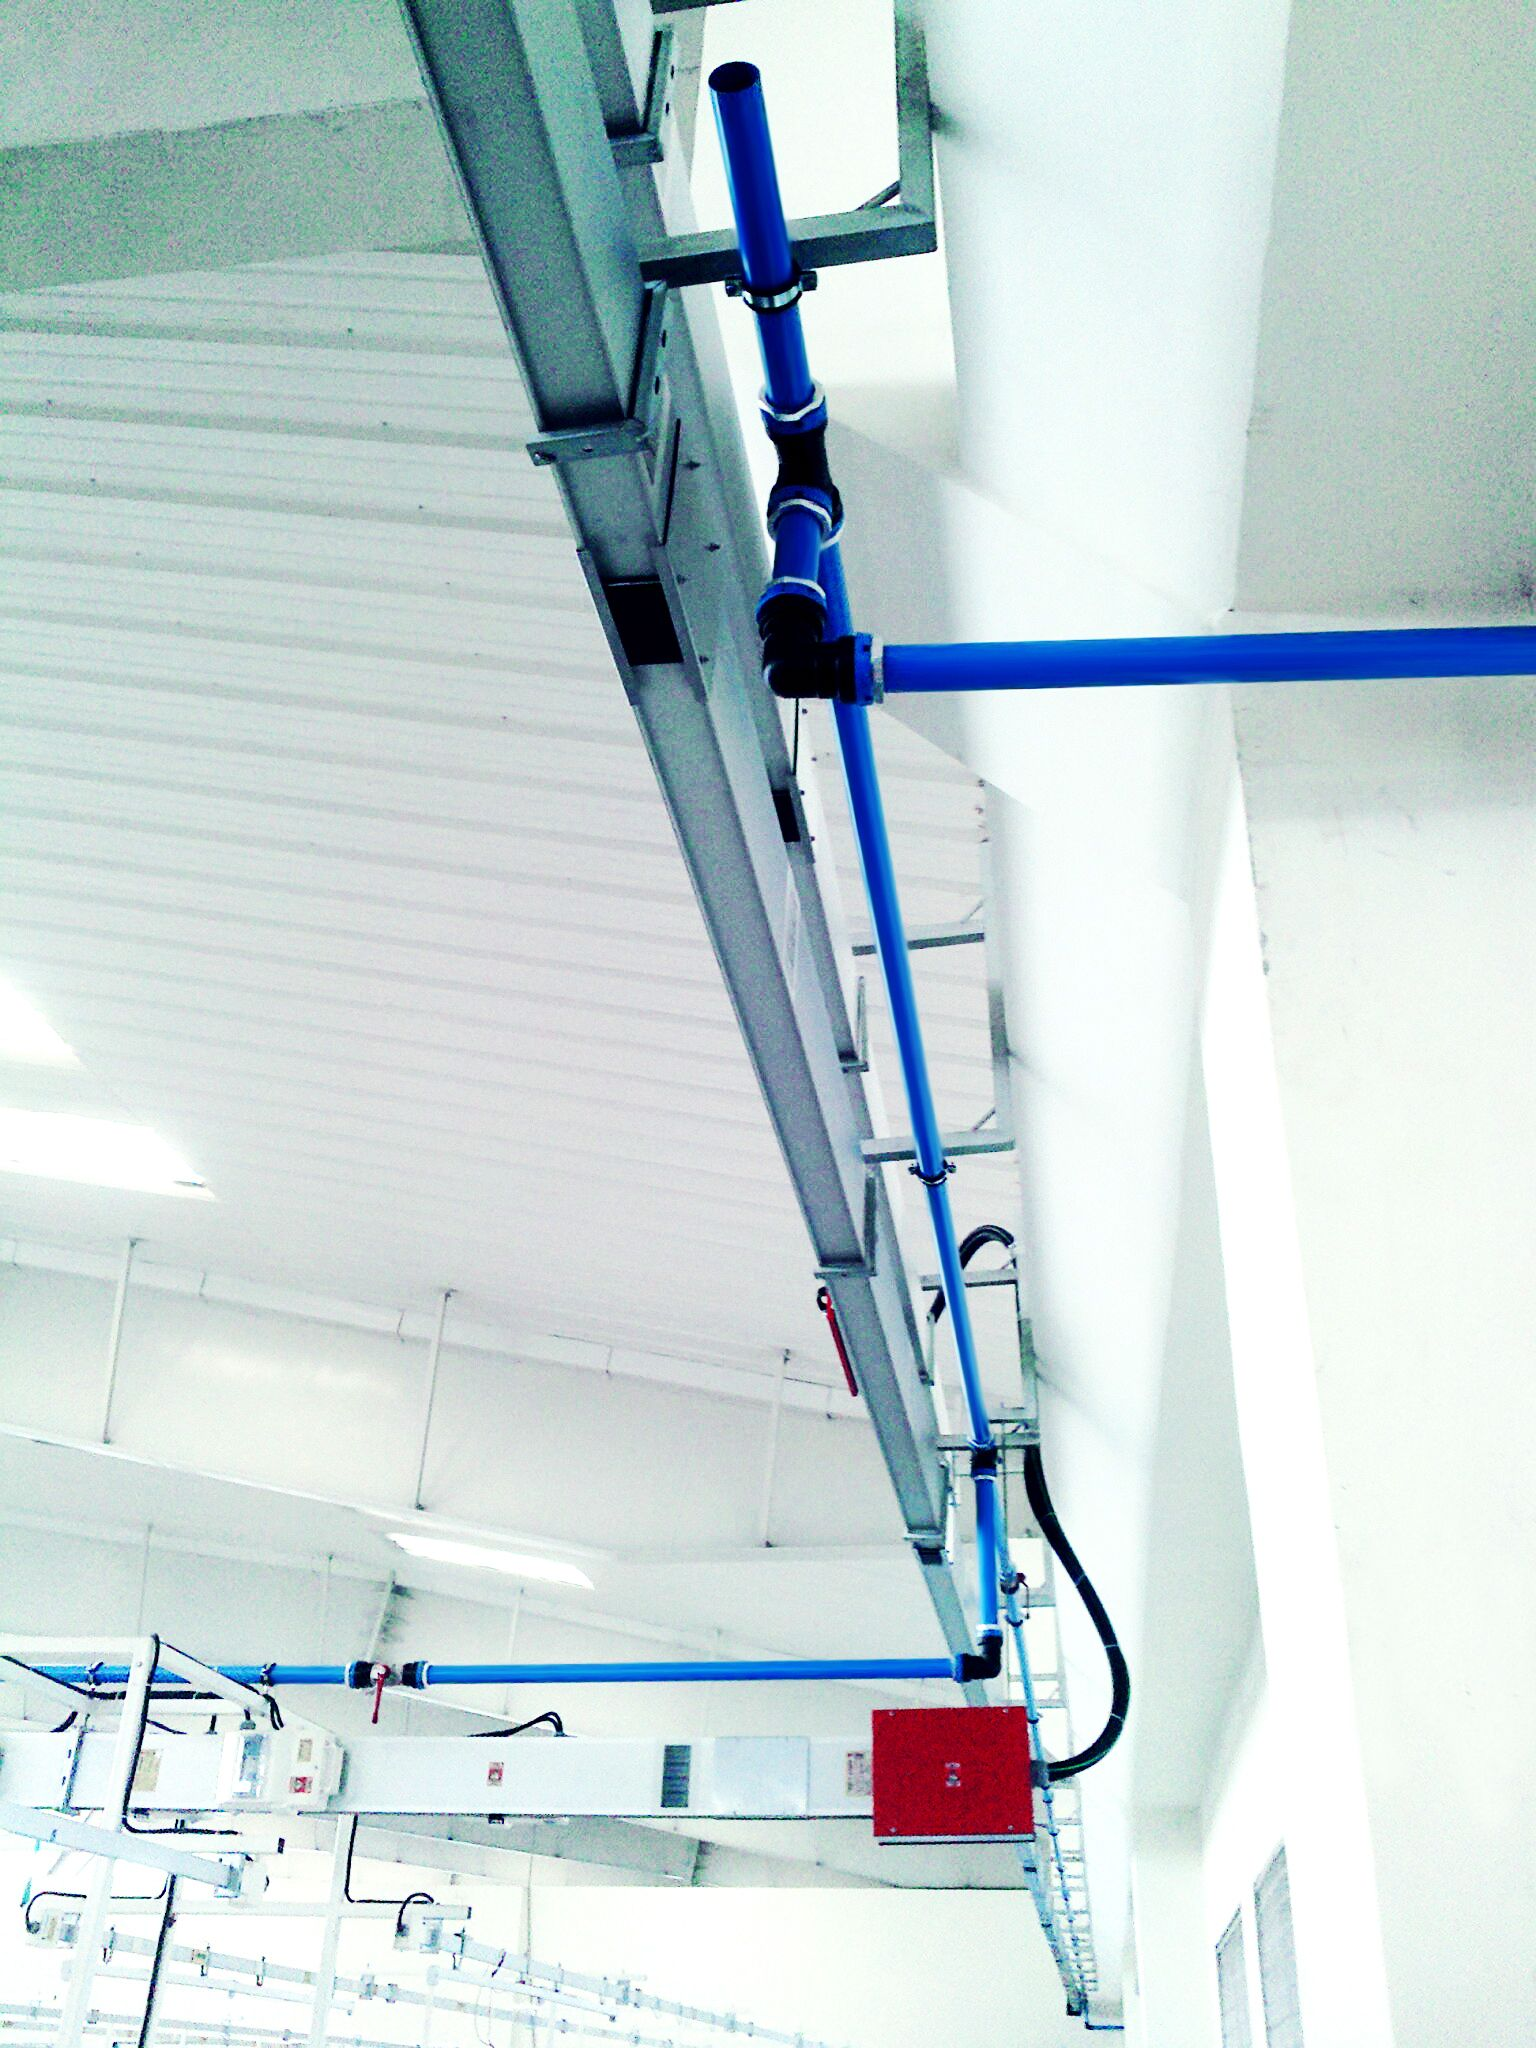 Pin by Pneumsys Advance Energy Soluti on Piping